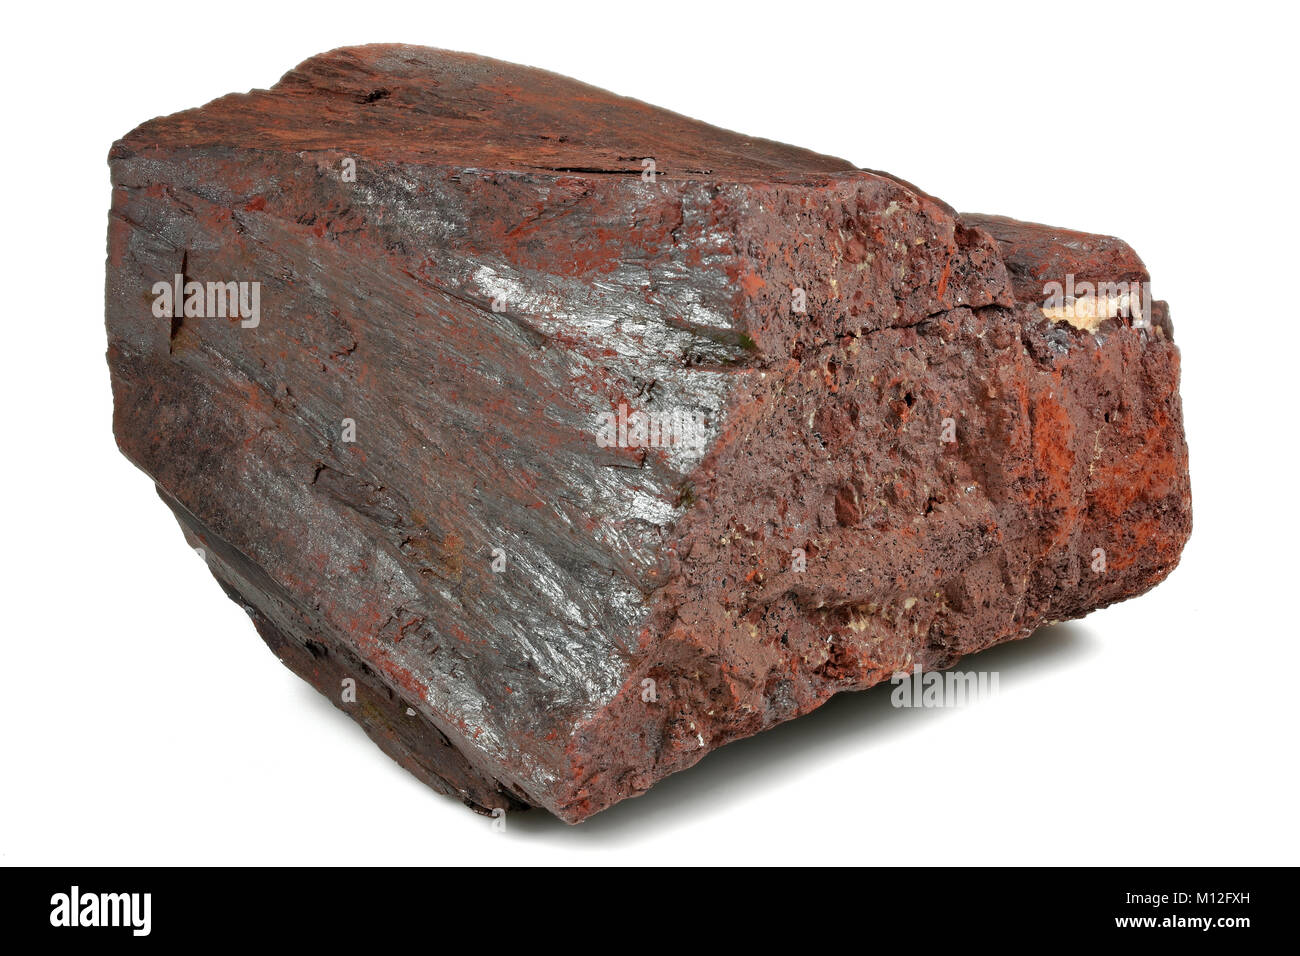 how to find iron ore